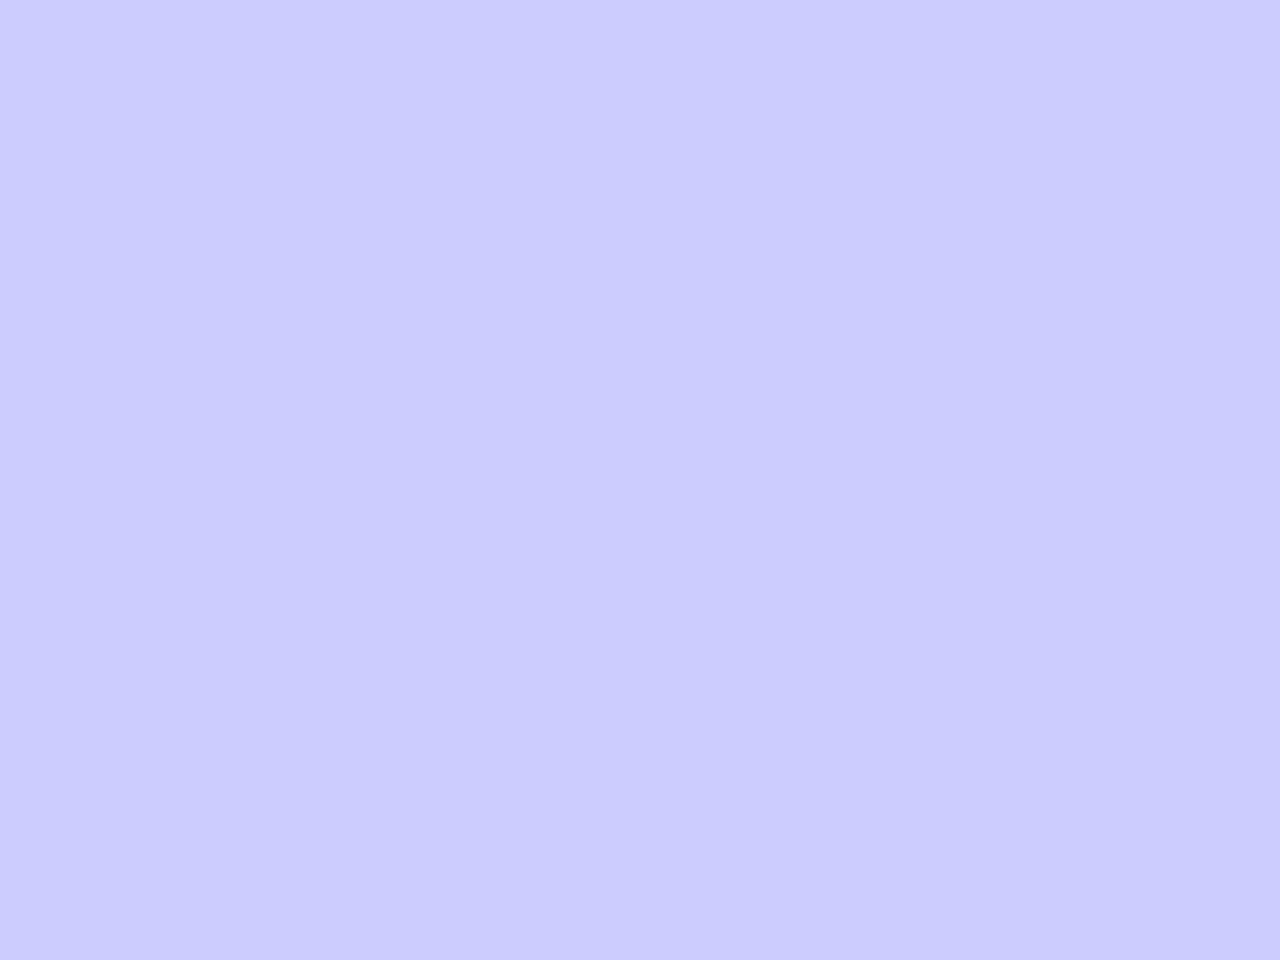 1280x960 Periwinkle Solid Color Background